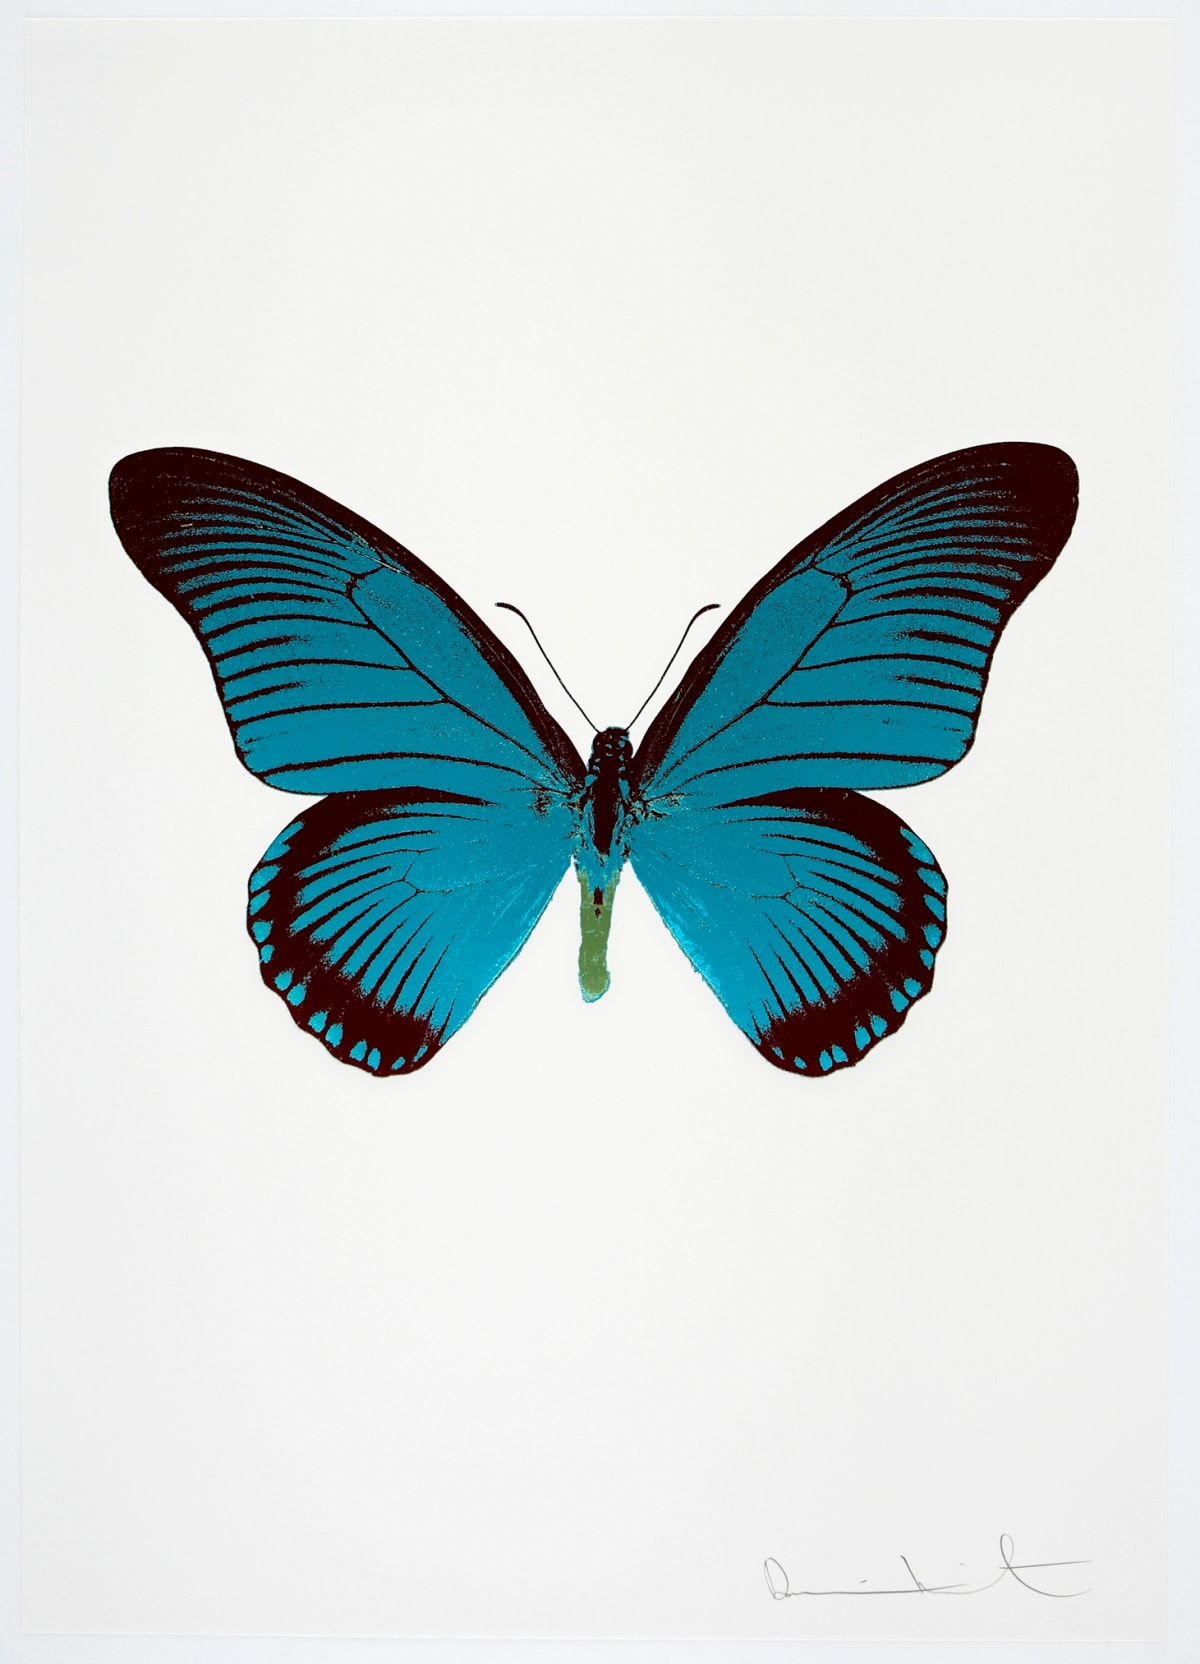 Damien Hirst The Souls IV - Topaz/Burgundy/Leaf Green Damien Hirst butterfly foil print for sale Damien Hirst print for sale , 2010 2 colour foil block on 300gsm Arches 88 archival paper. Signed and numbered. Published by Paul Stolper and Other Criteria 72 x 51cm OC7998 / 1418-21 Edition of 15